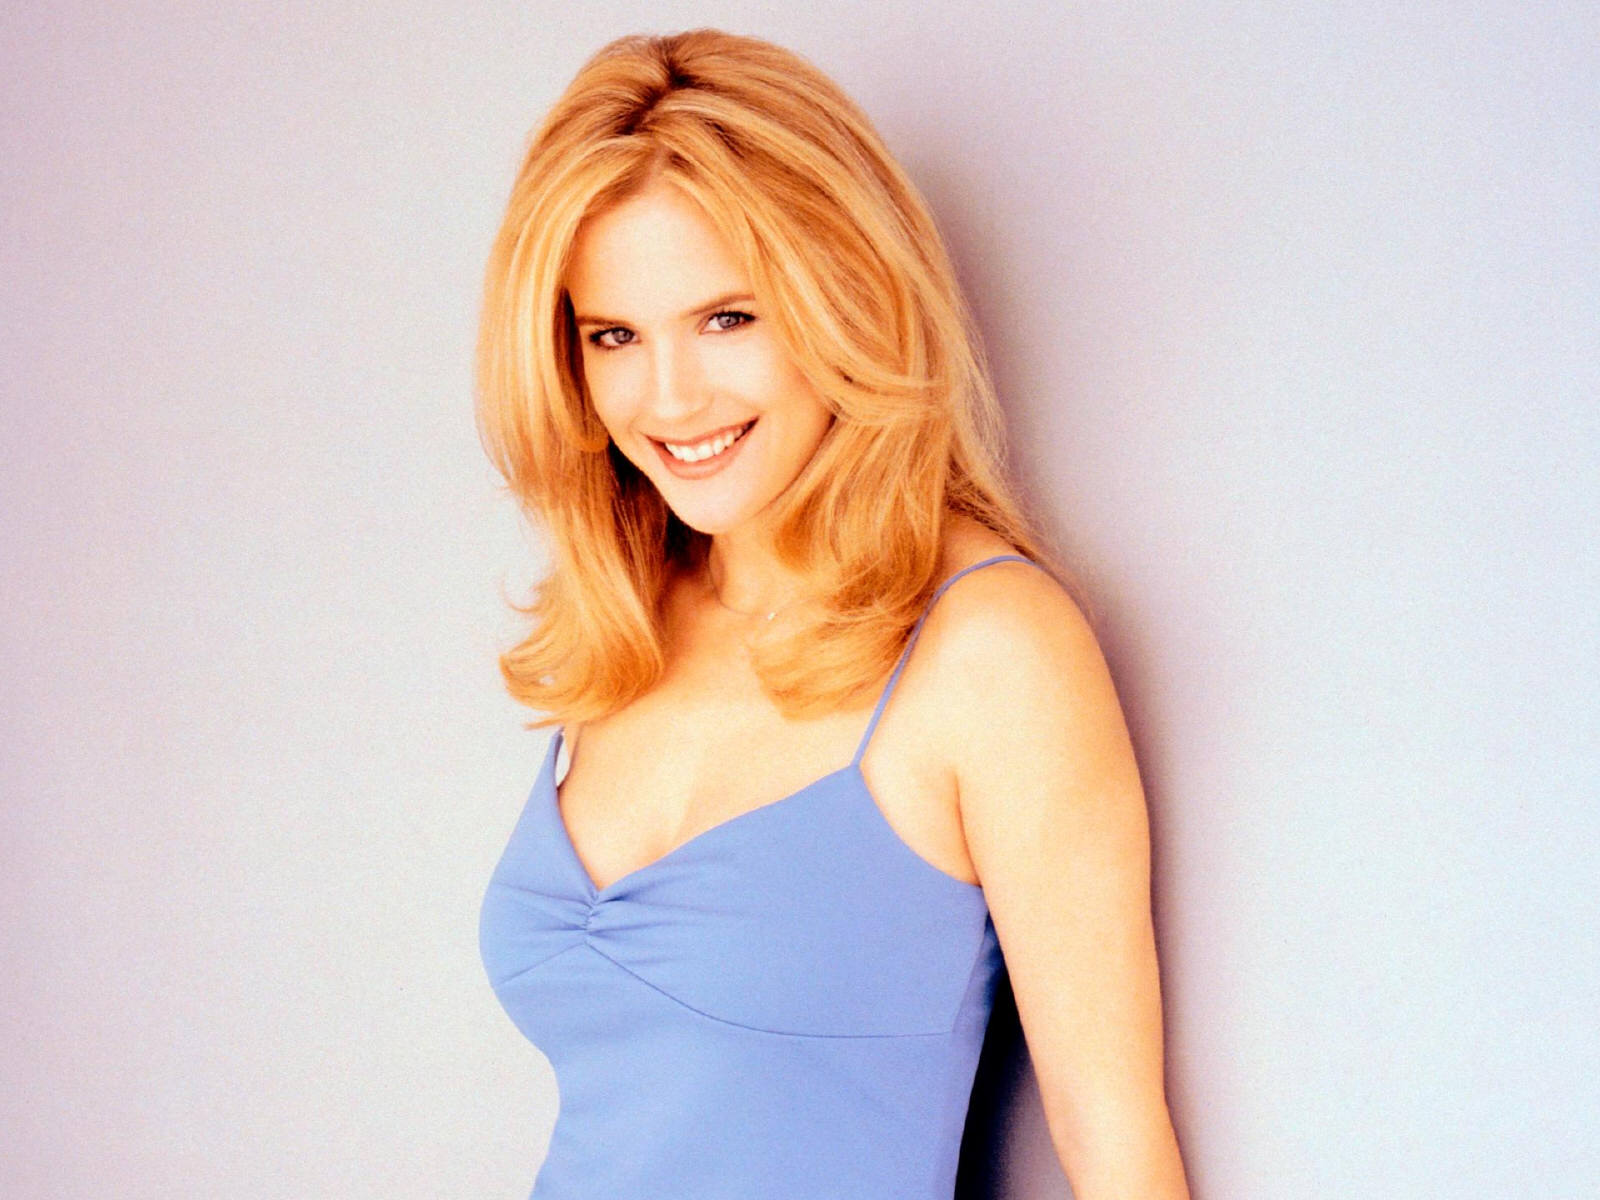 Kelly preston wallpapers